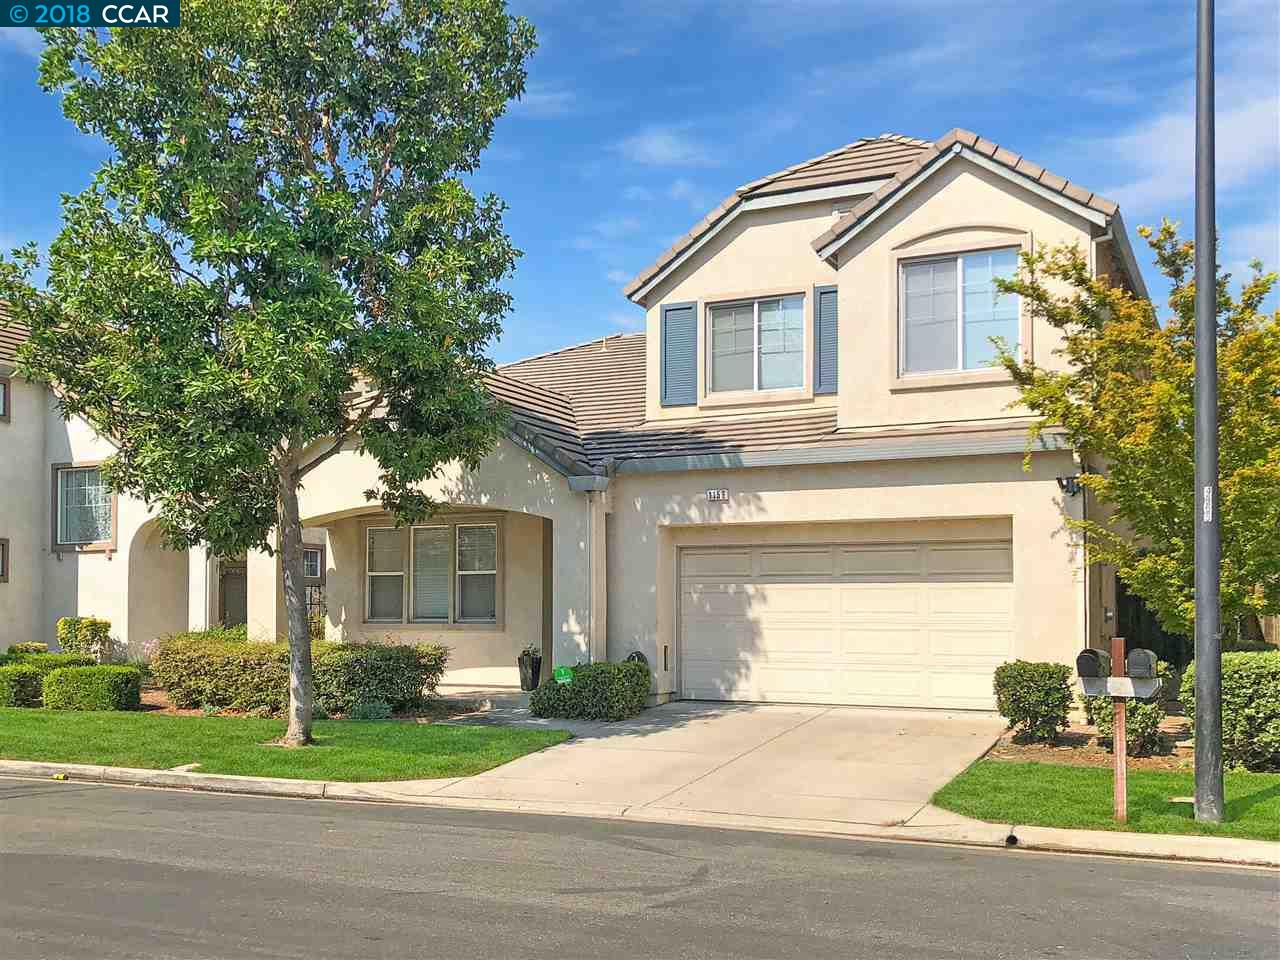 1159 Chesapeake Dr, PITTSBURG, CA 94565